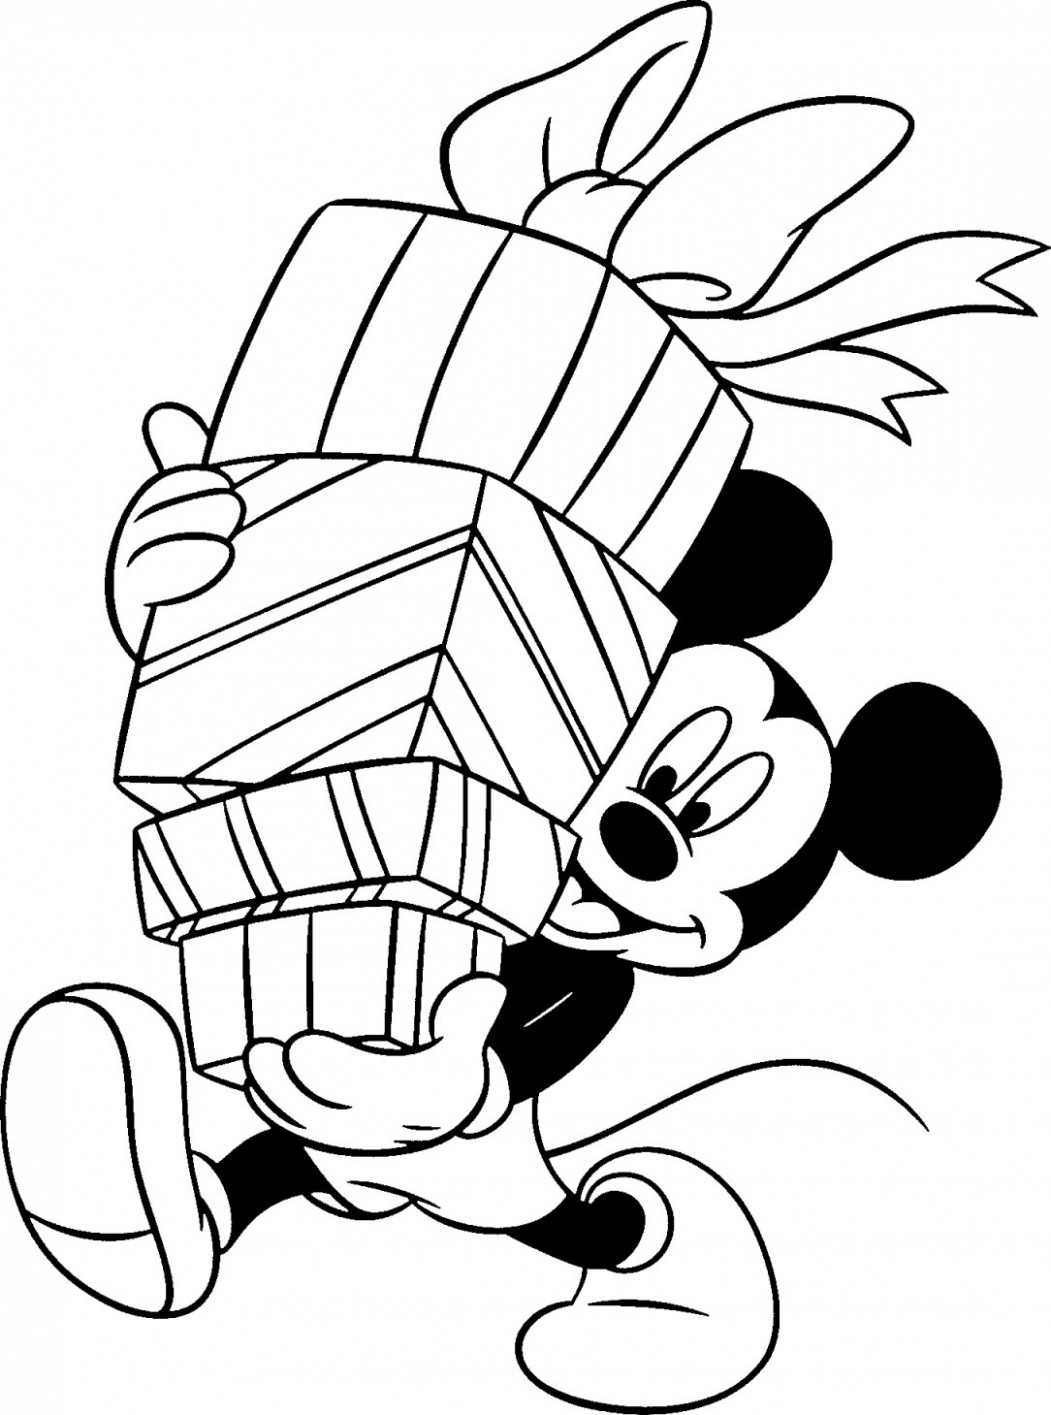 Free Disney Christmas Printable Coloring Pages for Kids - Honey   Lime